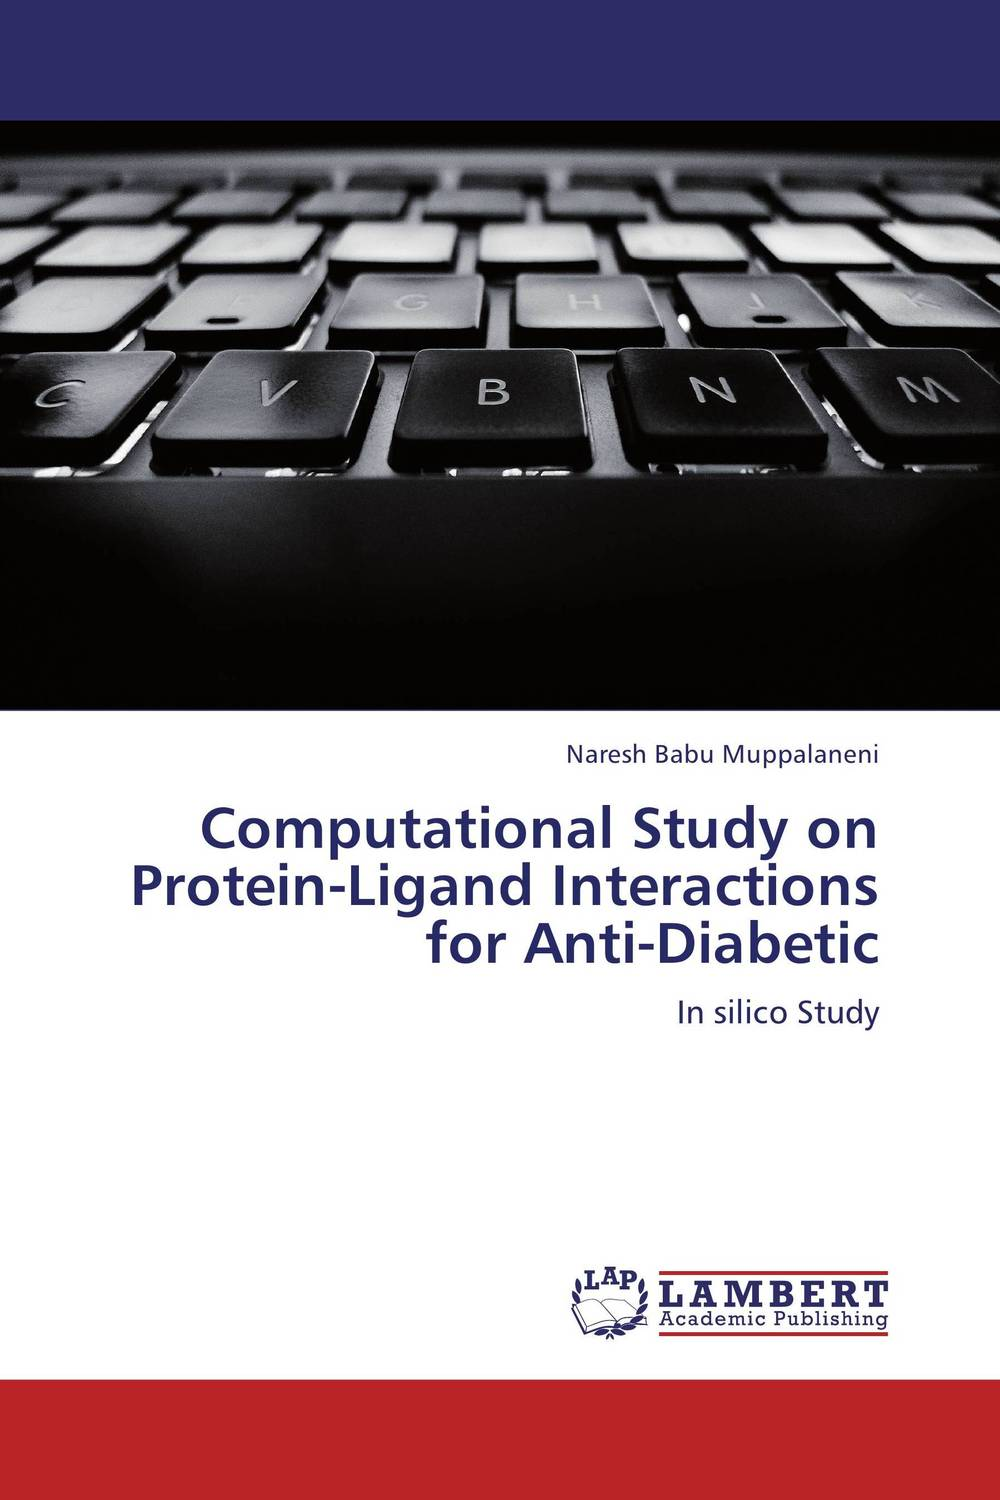 Computational Study on Protein-Ligand Interactions for Anti-Diabetic drug discovery and design